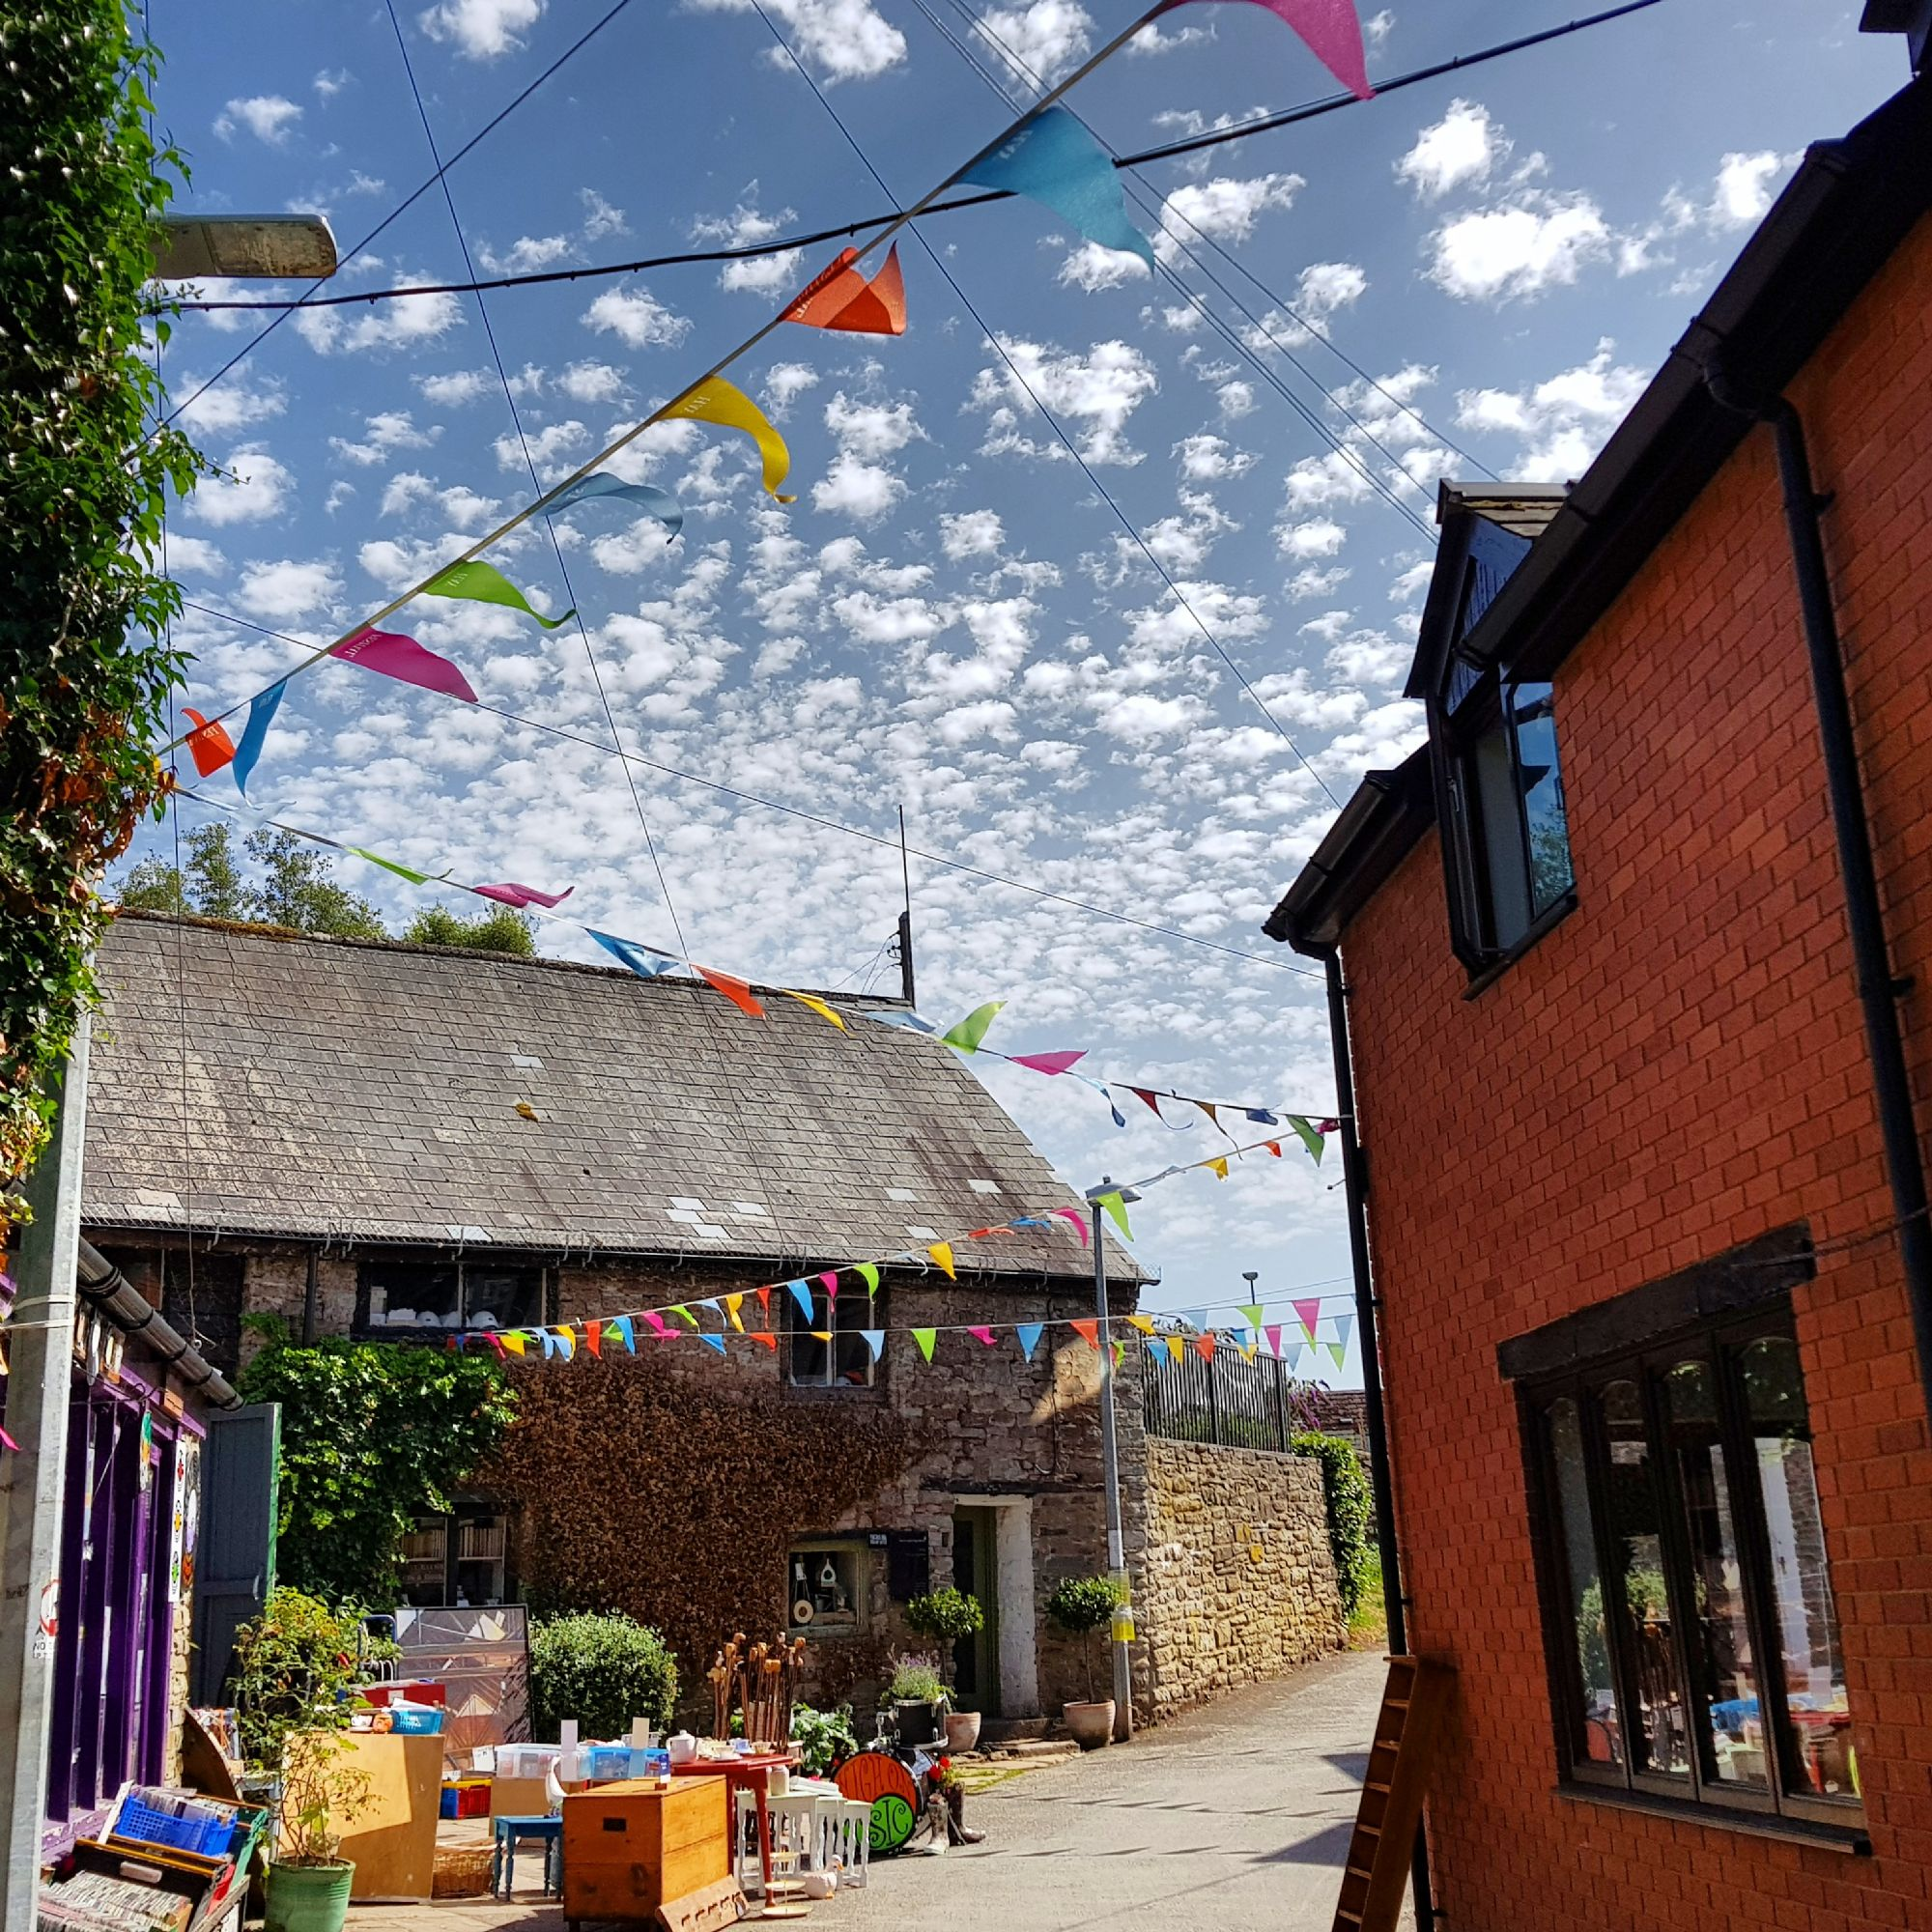 Hay-On-Wye, the book town